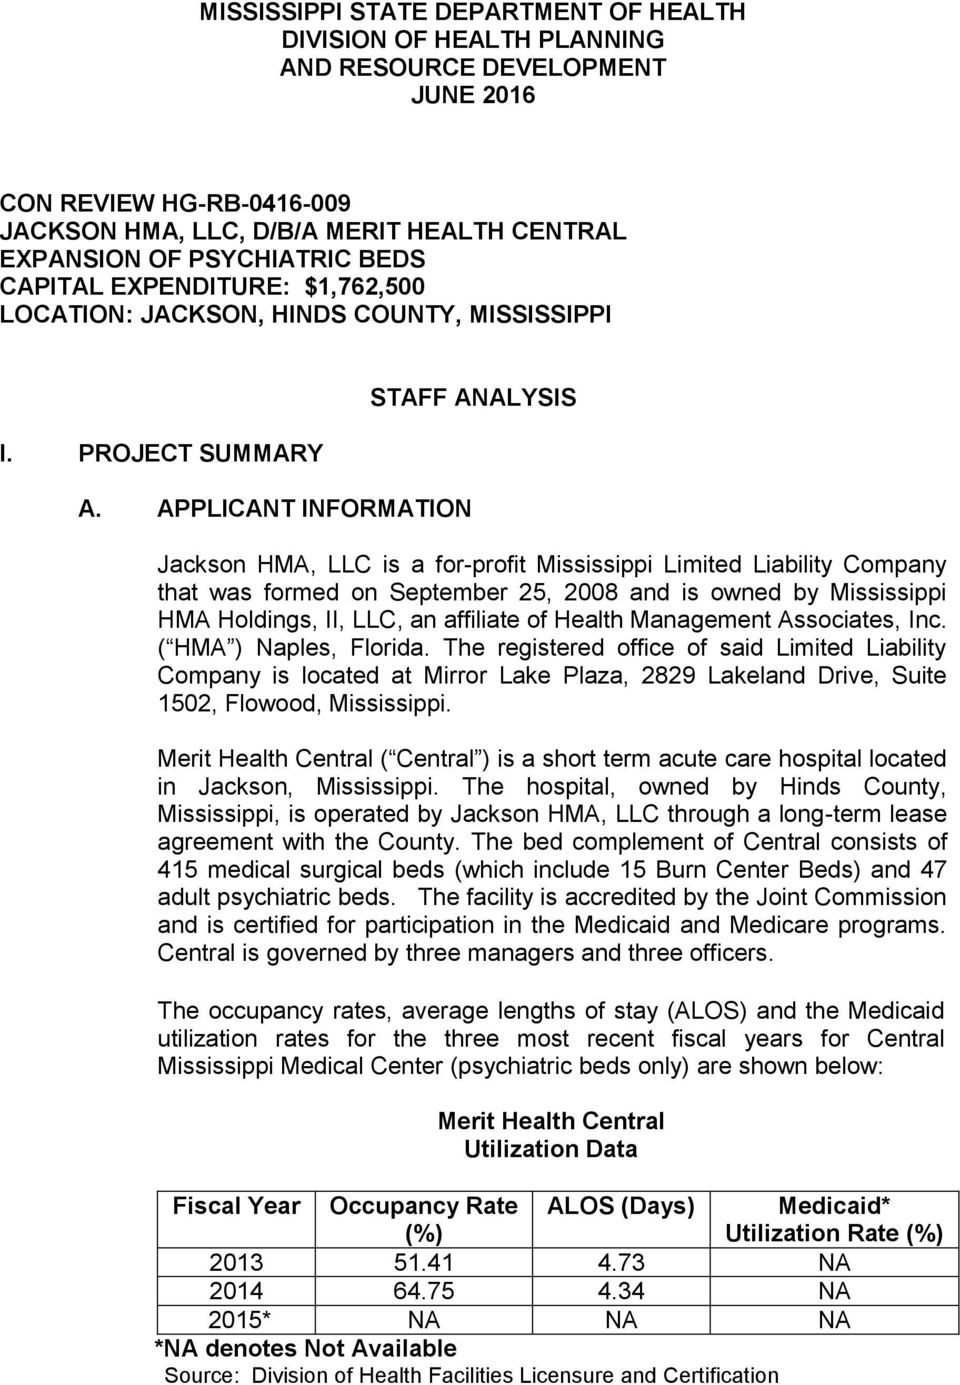 APPLICANT INFORMATION STAFF ANALYSIS Jackson HMA, LLC is a for-profit Mississippi Limited Liability Company that was formed on September 25, 2008 and is owned by Mississippi HMA Holdings, II, LLC, an